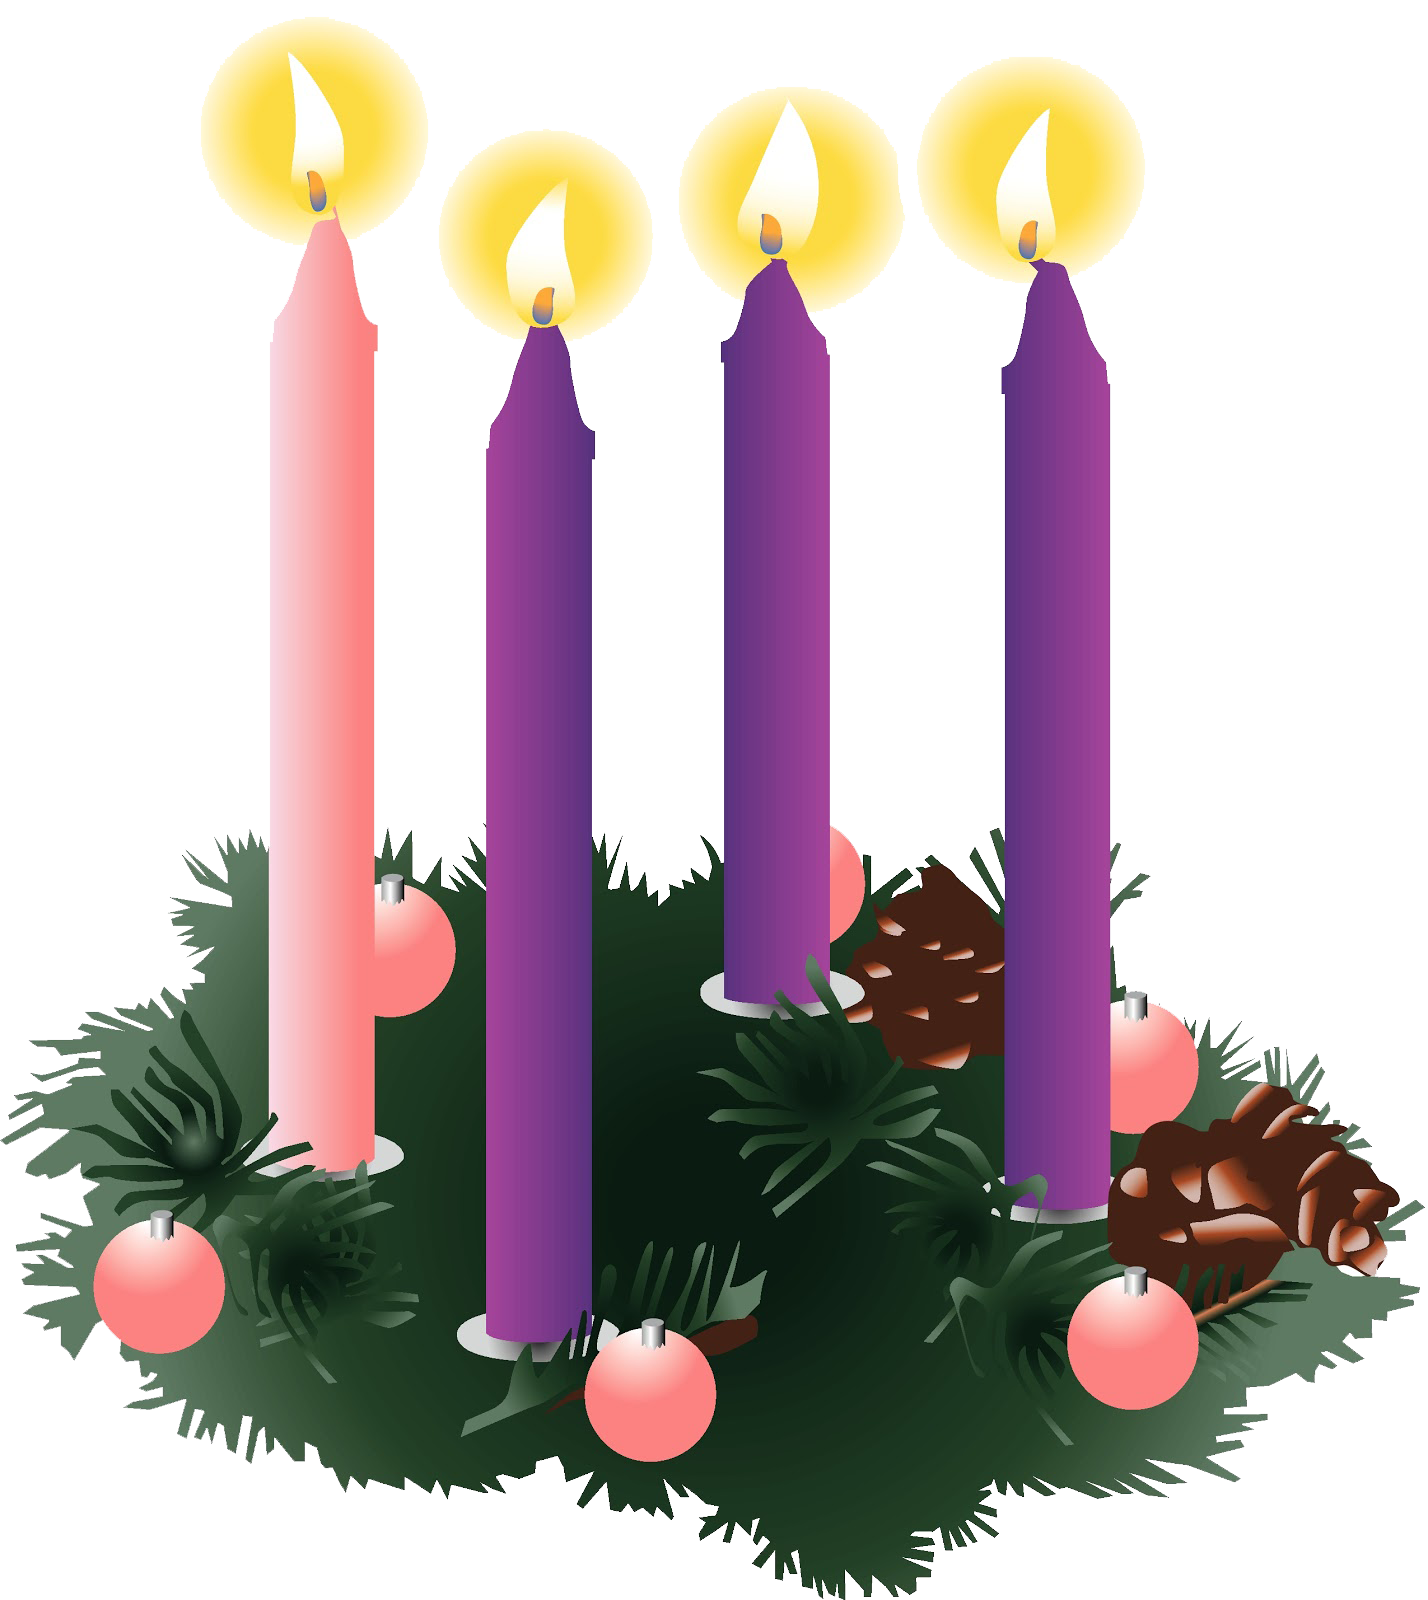 svg free download Wreath th of church. 4th clipart sunday advent